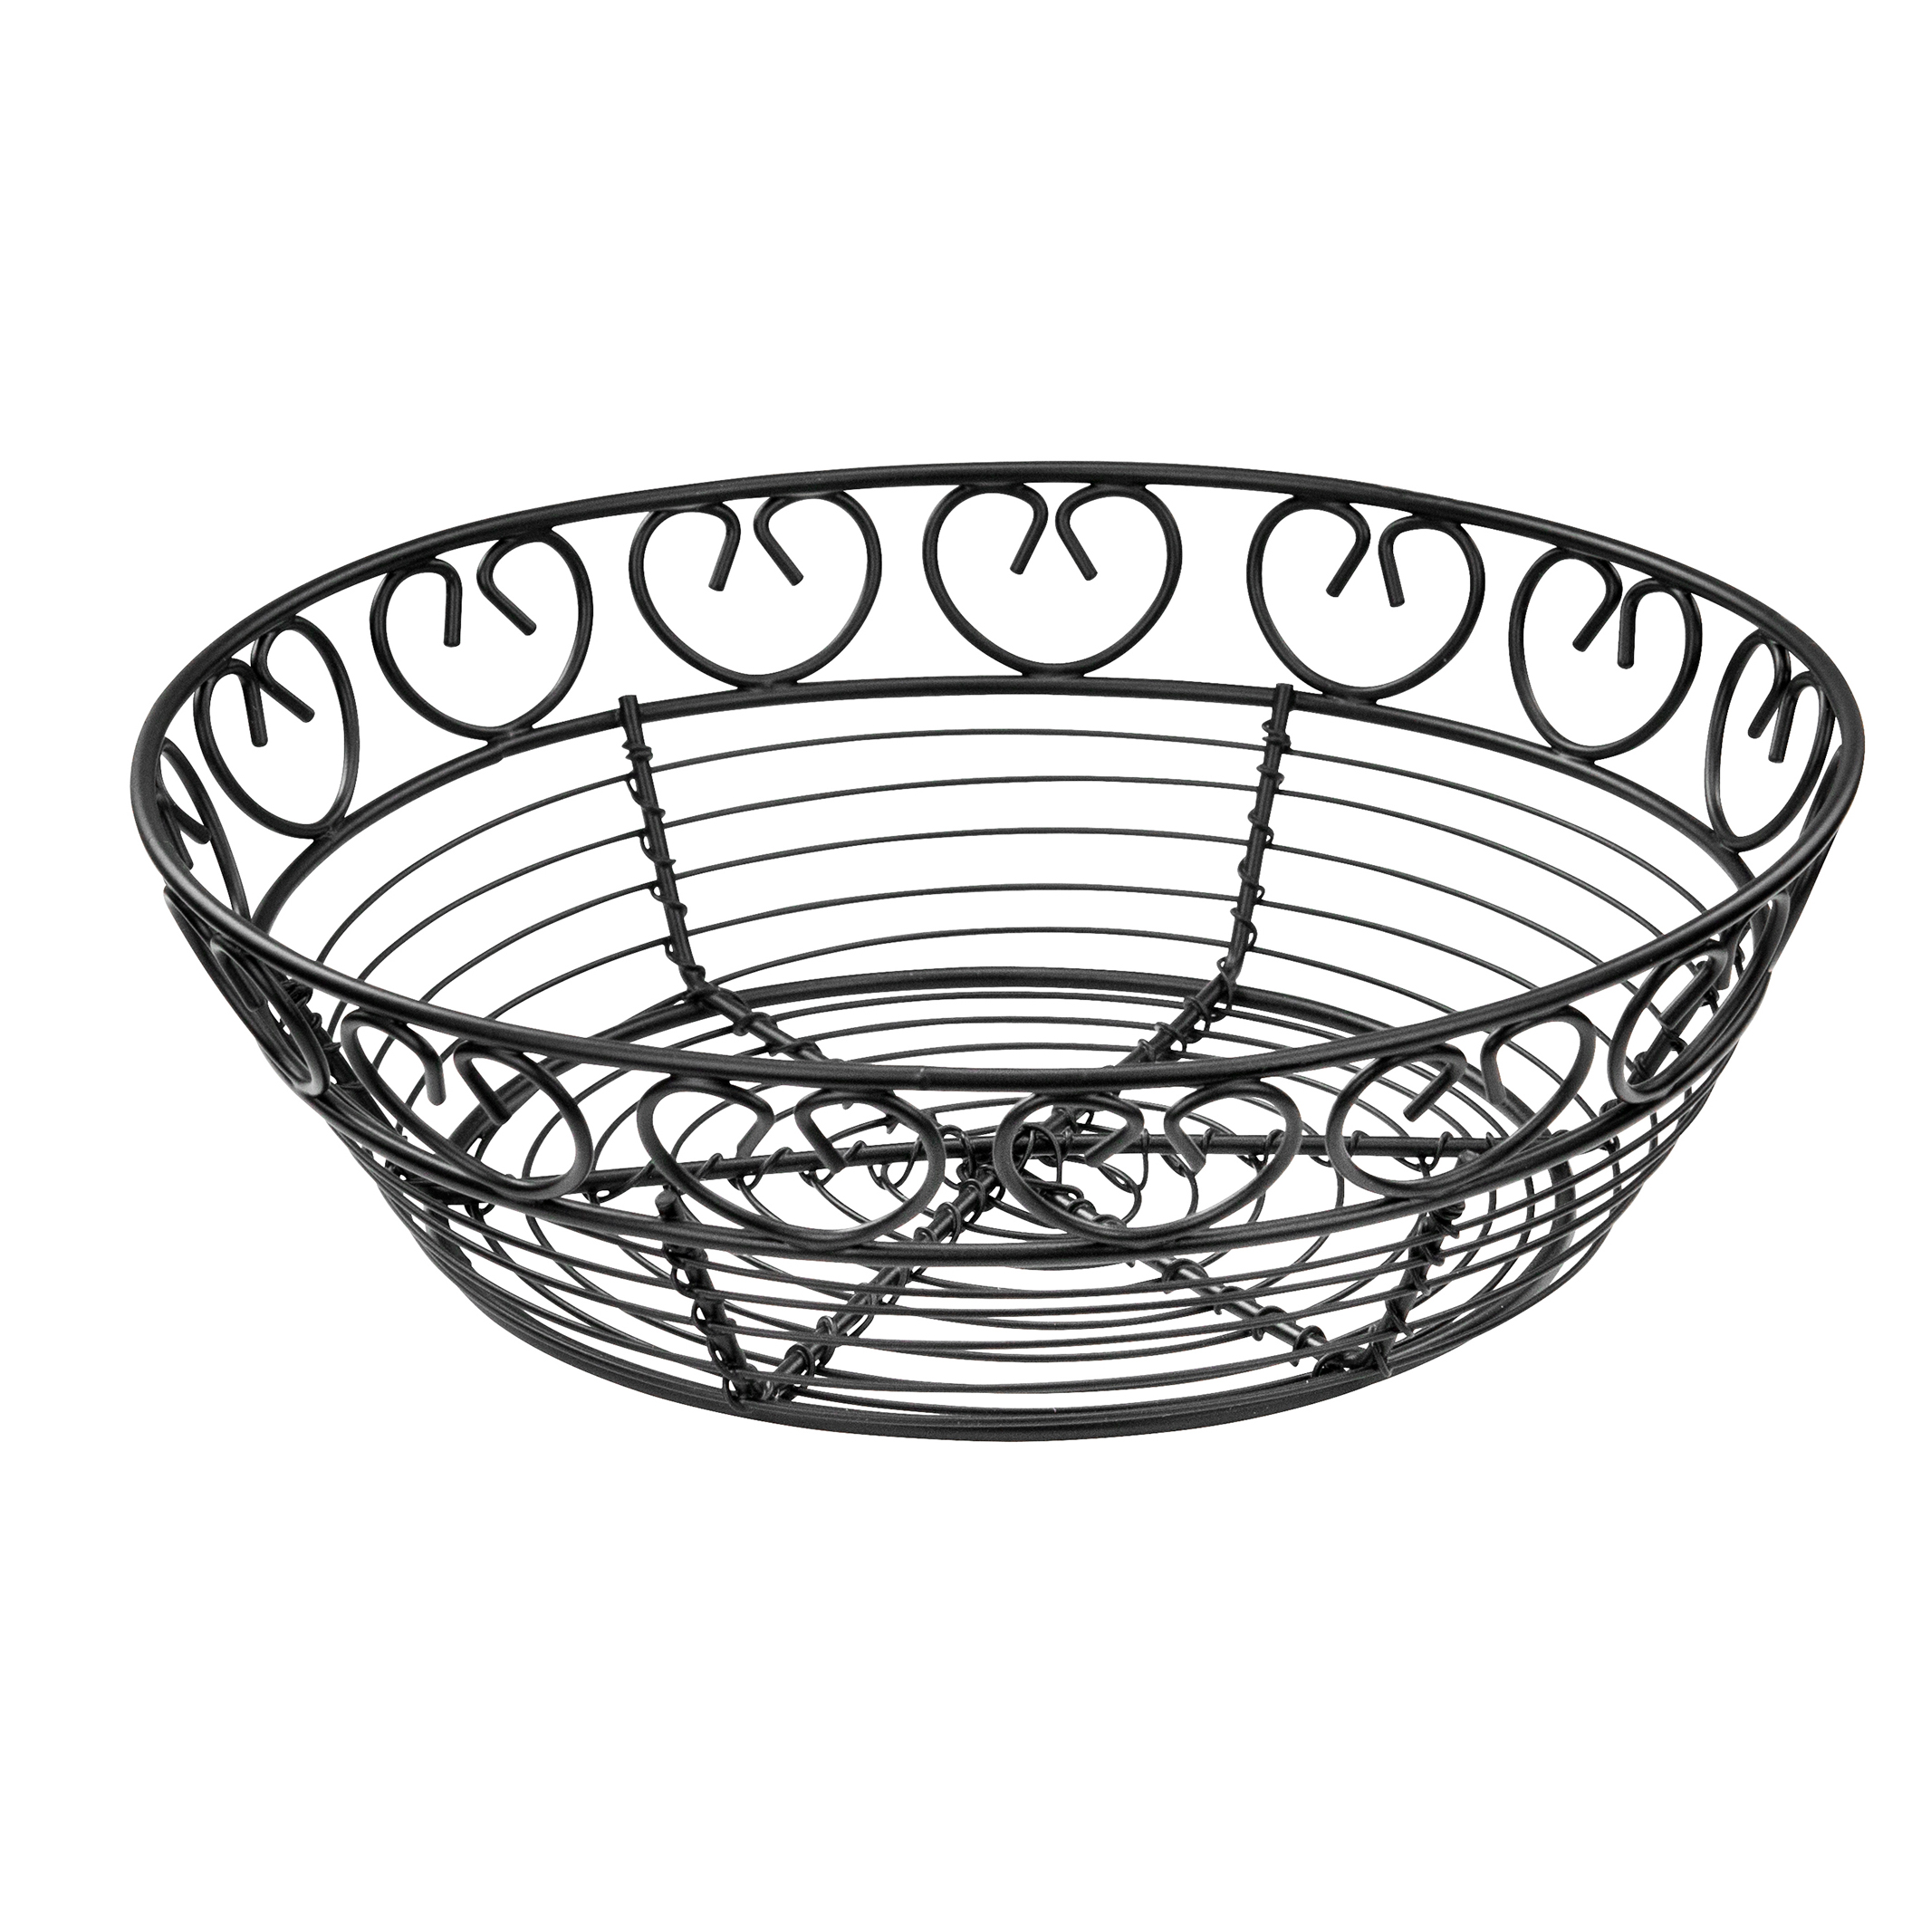 Winco WBKG-8R basket, tabletop, metal